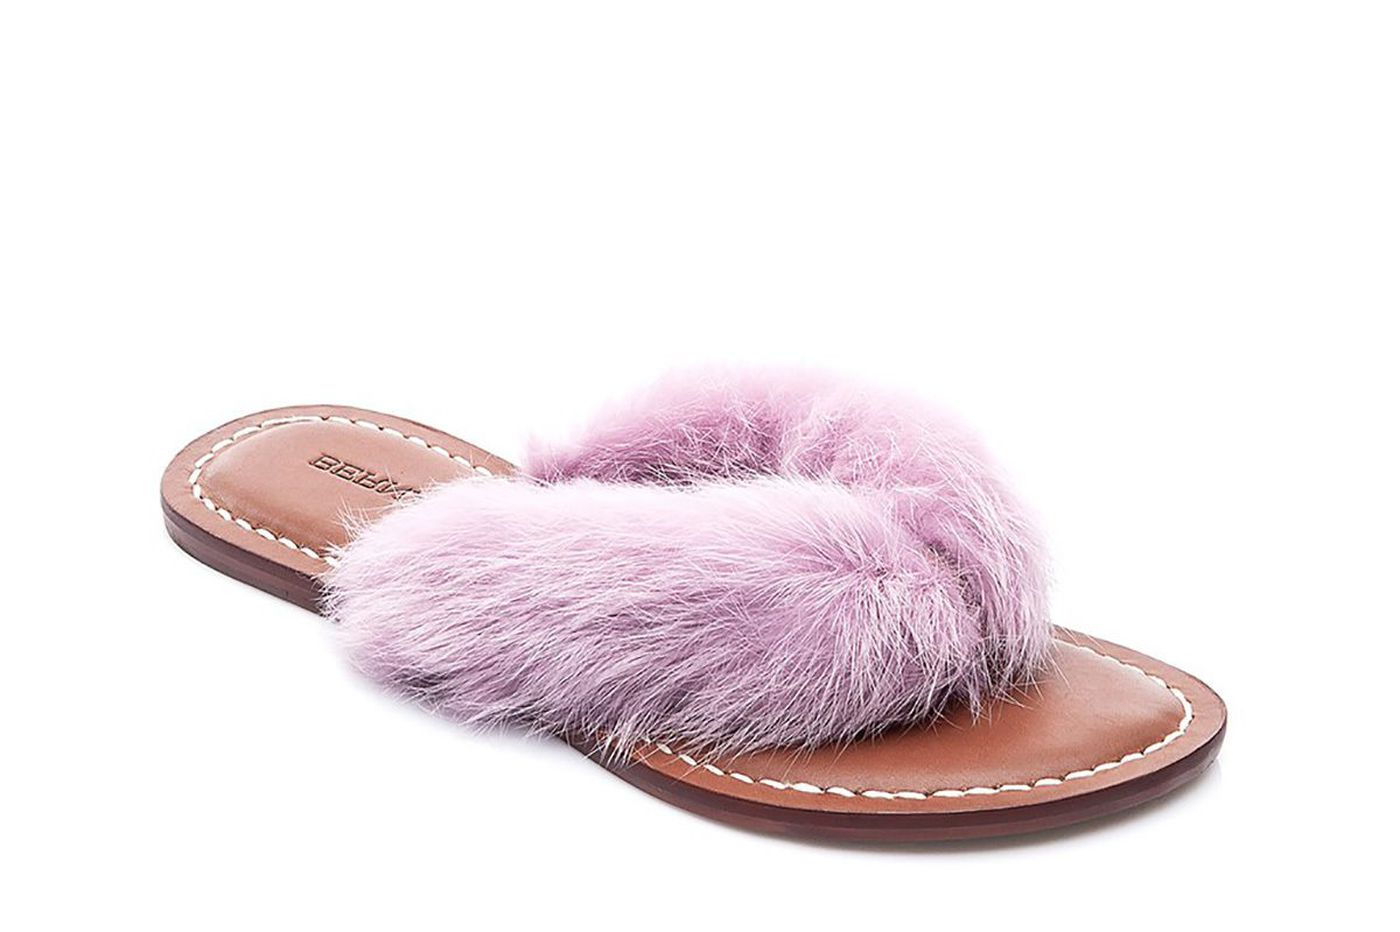 Go ahead, wear those fuzzy slippers outside